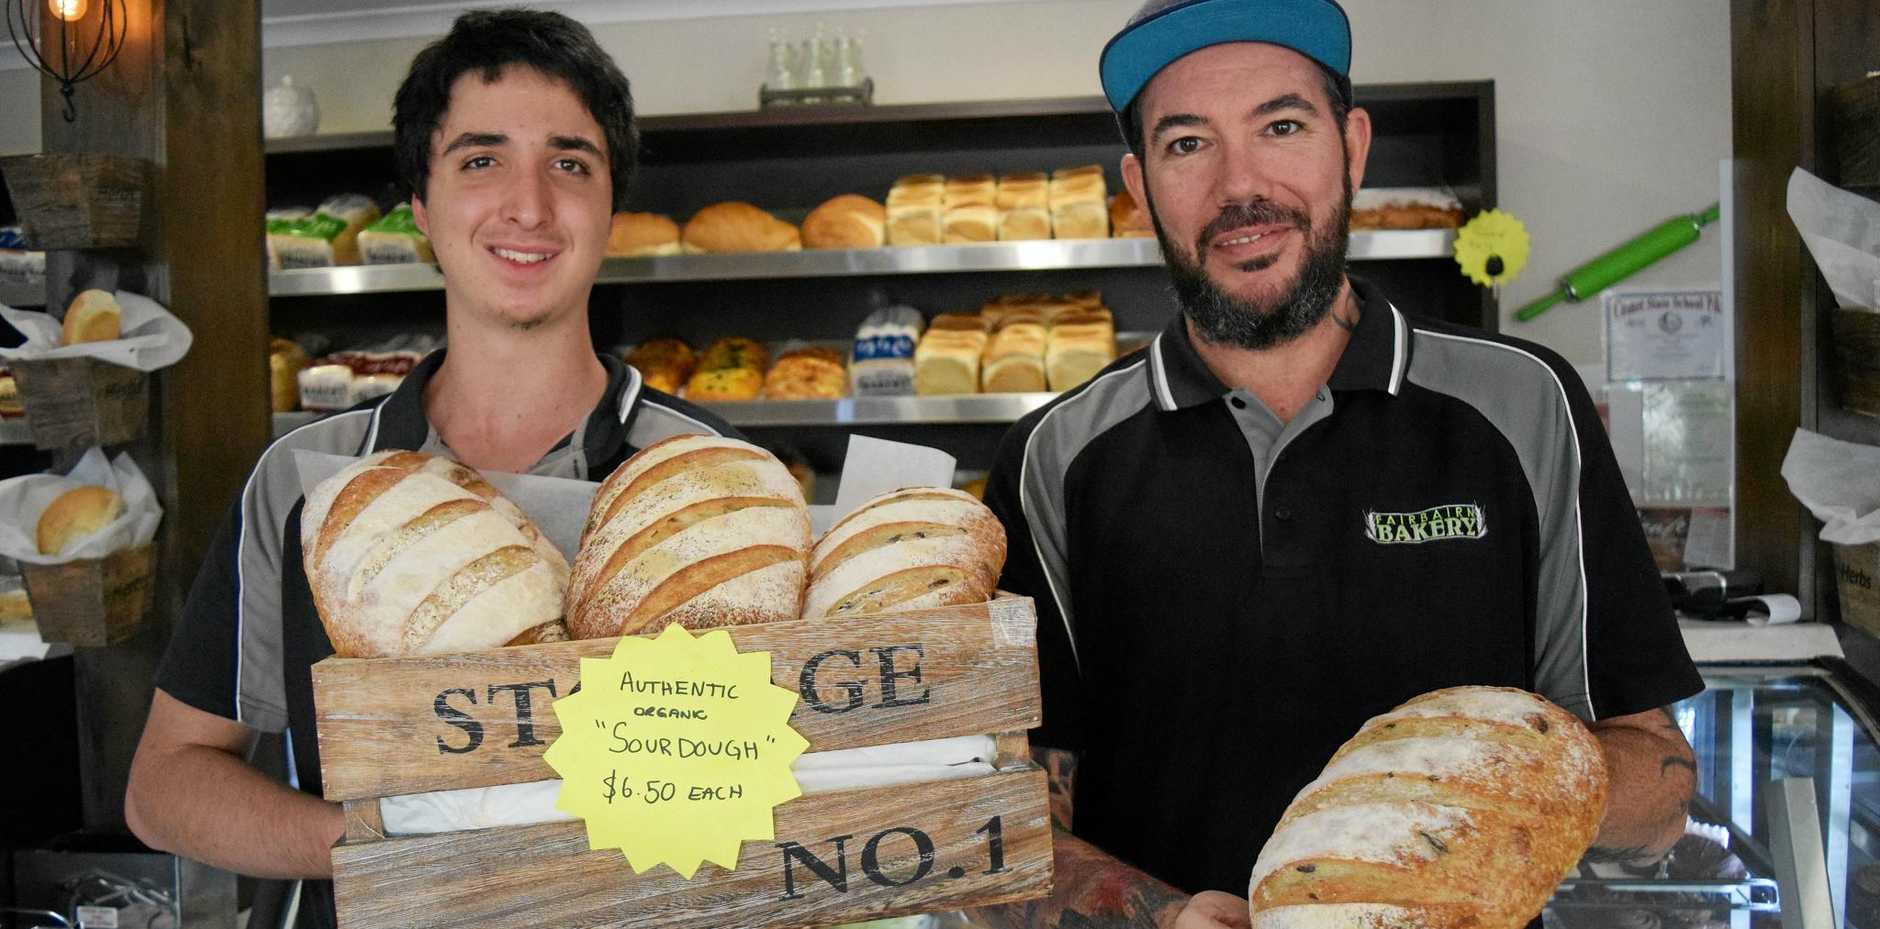 Apprentice baker Robert Day and baker Damien Hudson with Fairbairn Bakery's winning sourdough.